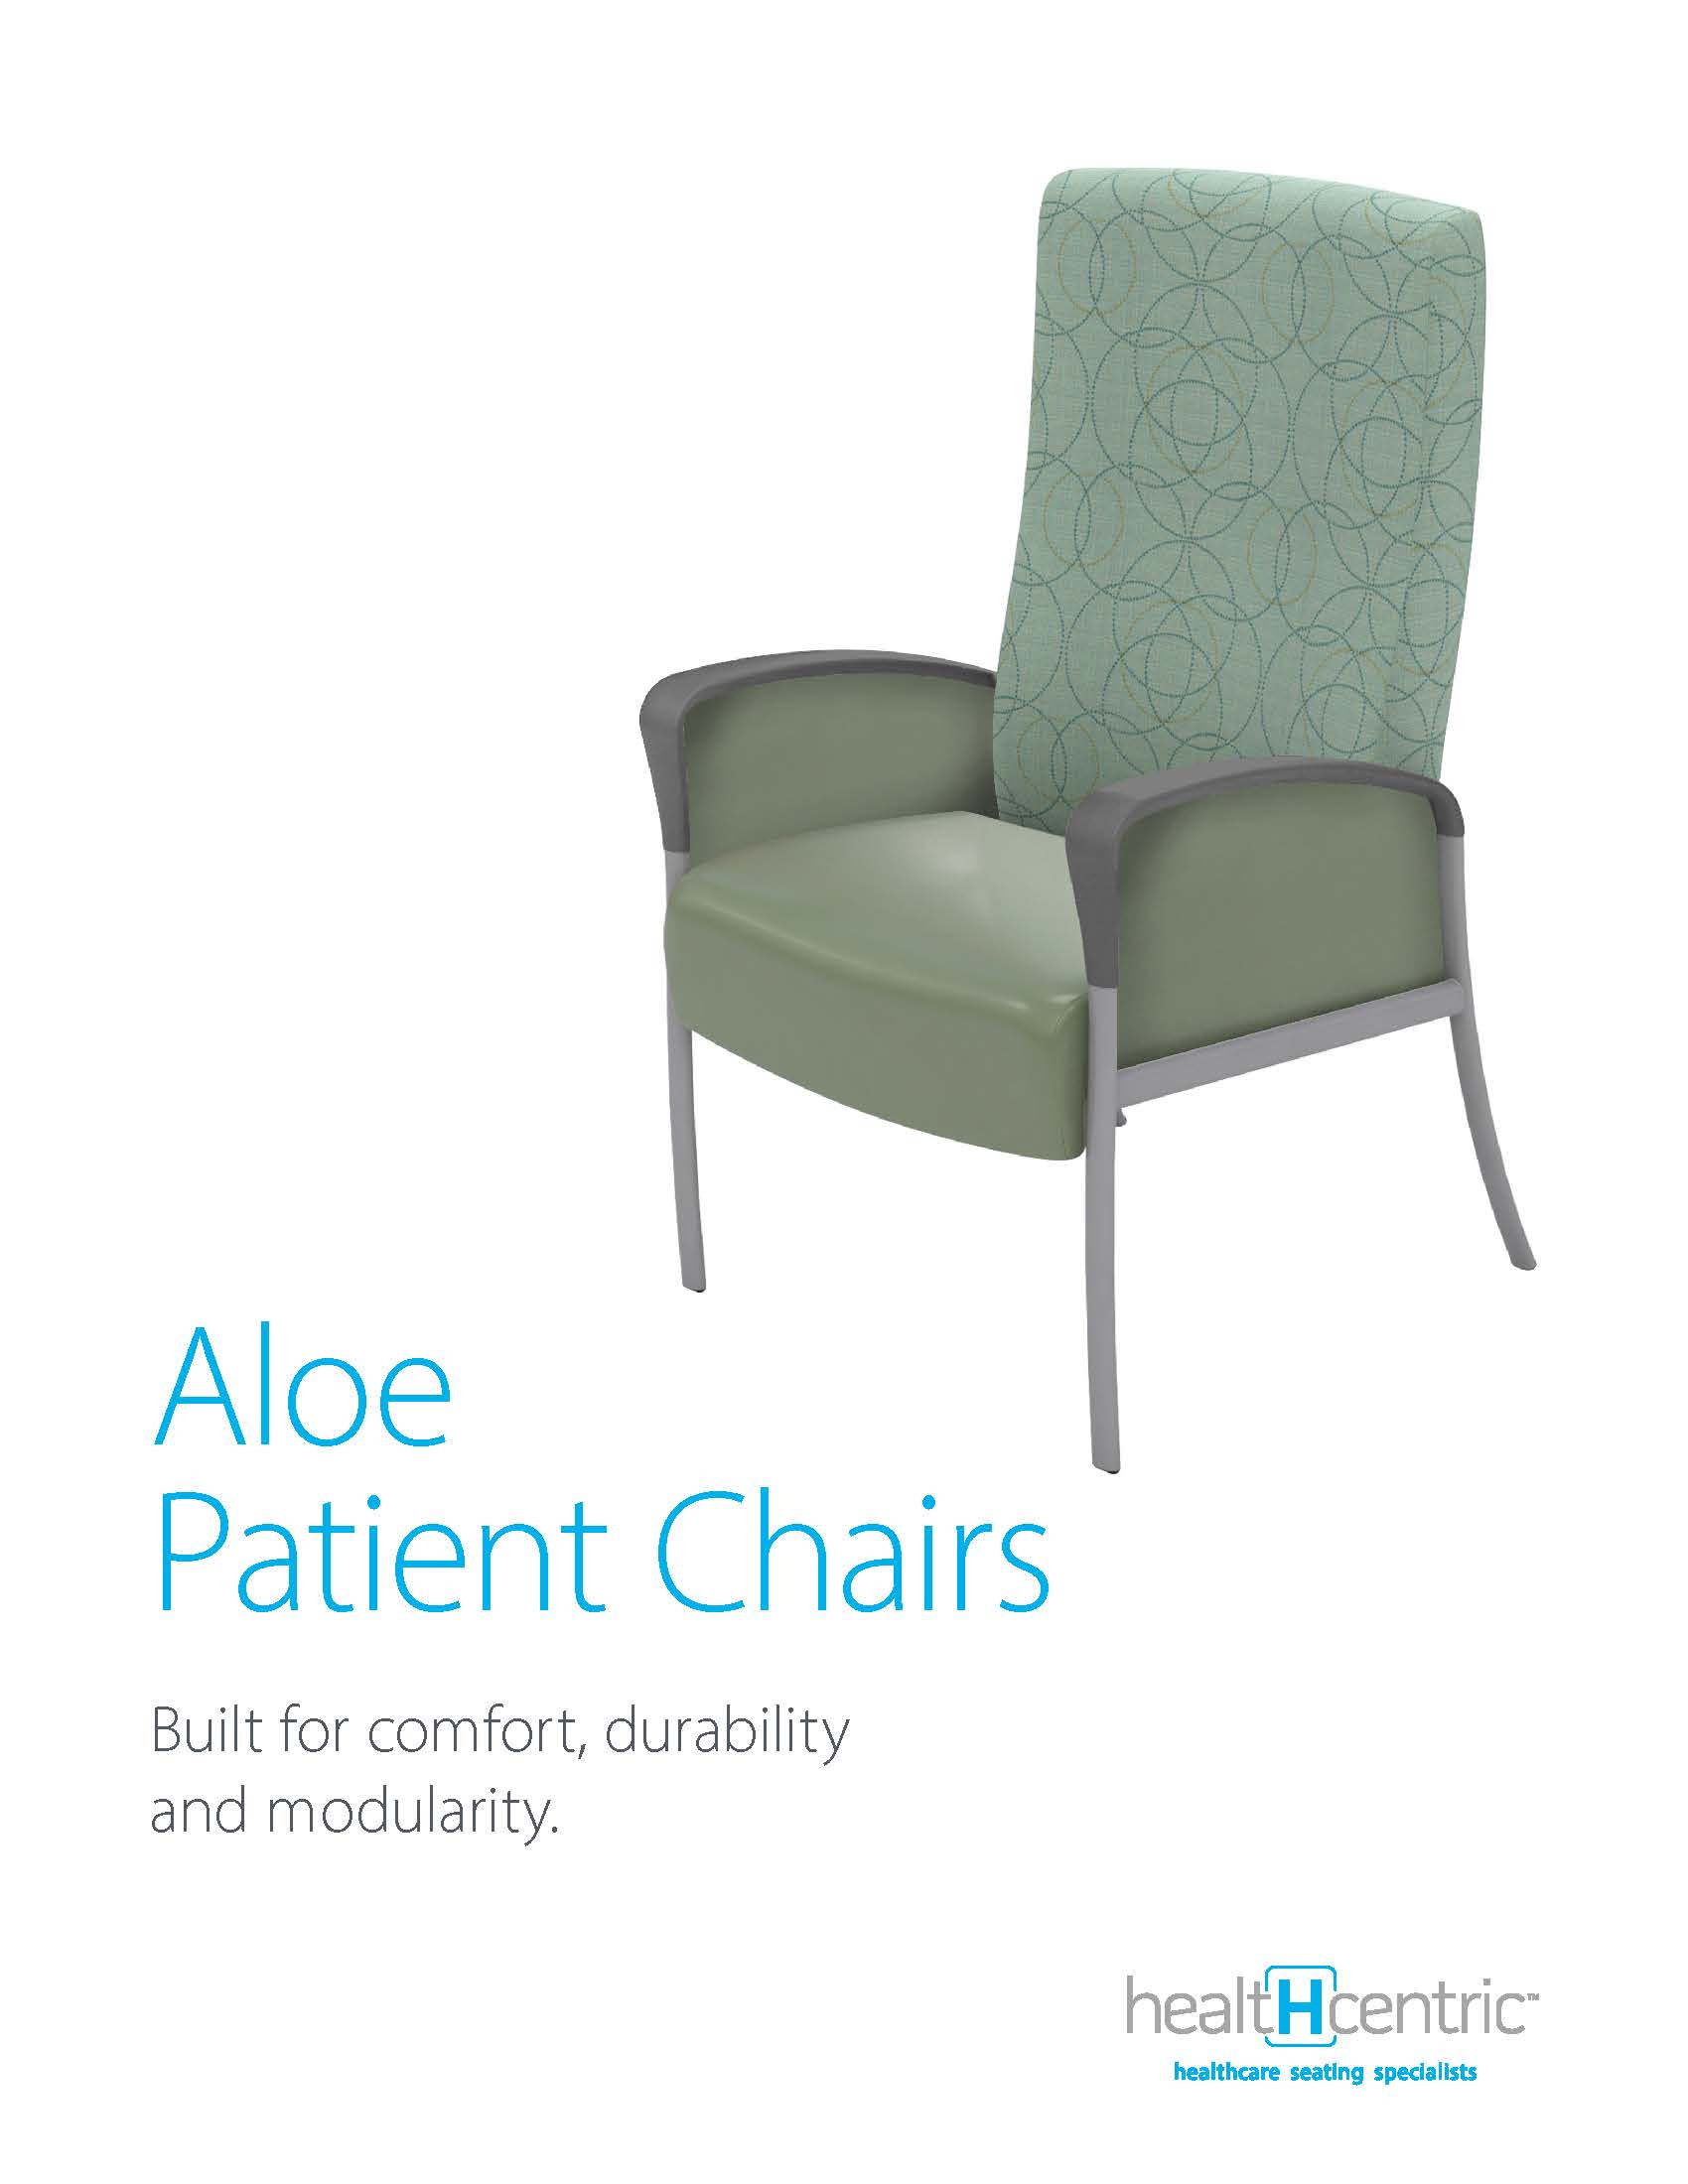 Aloe Patient Chairs